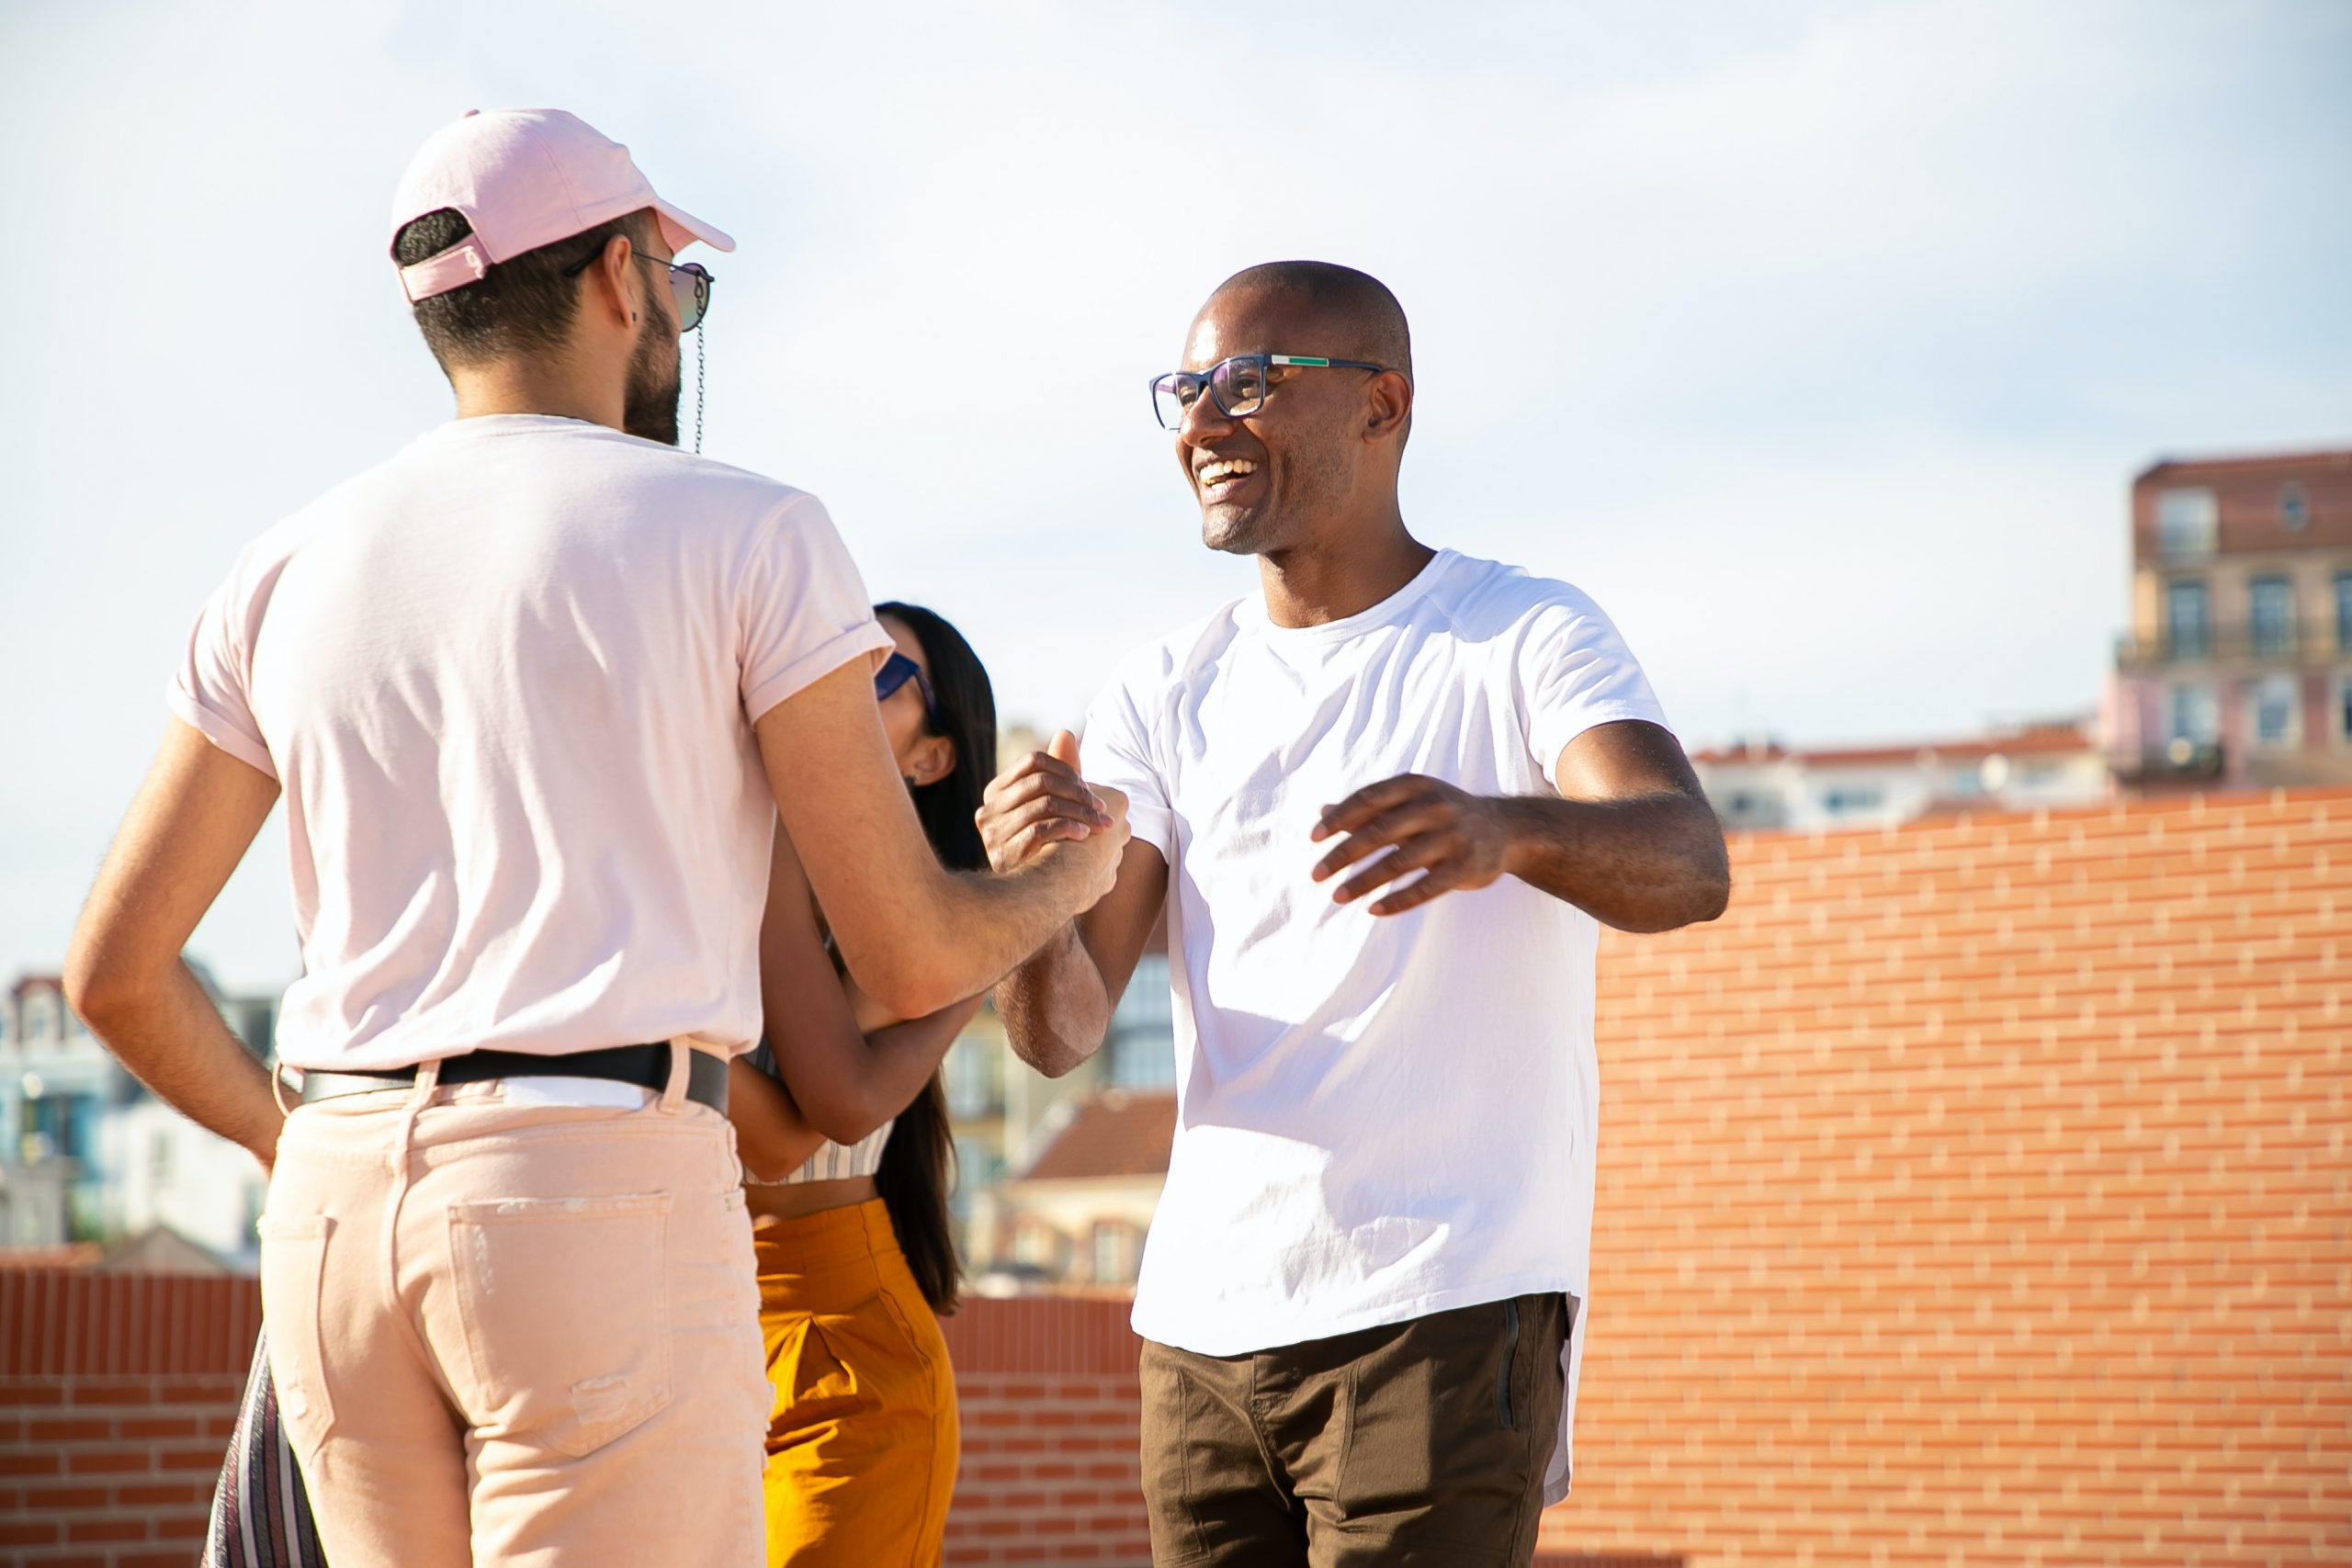 """Image of two people sharing a handshake on a rooftop. This image illustrates how someone searching """"psychosis symptoms"""" could look after psychosis treatment in New York City. 10010 